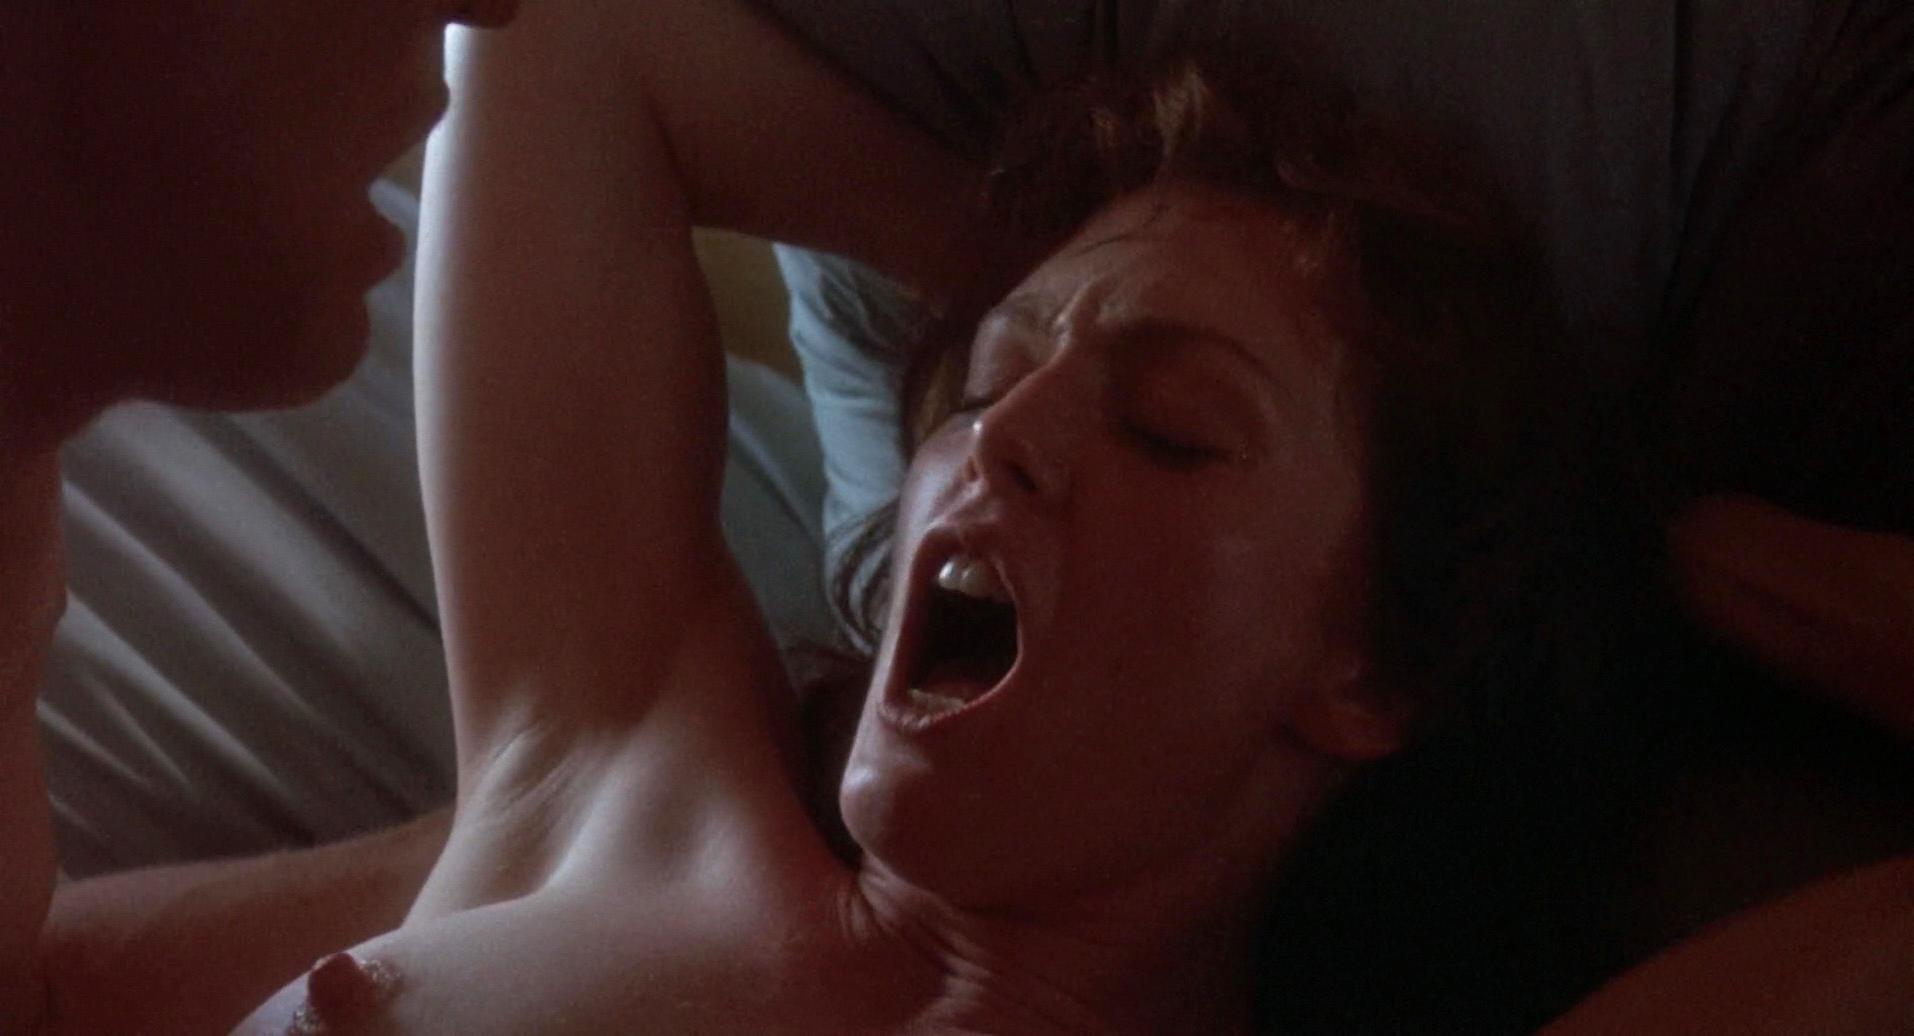 Hot. nice free vid julianne moore fucking ass